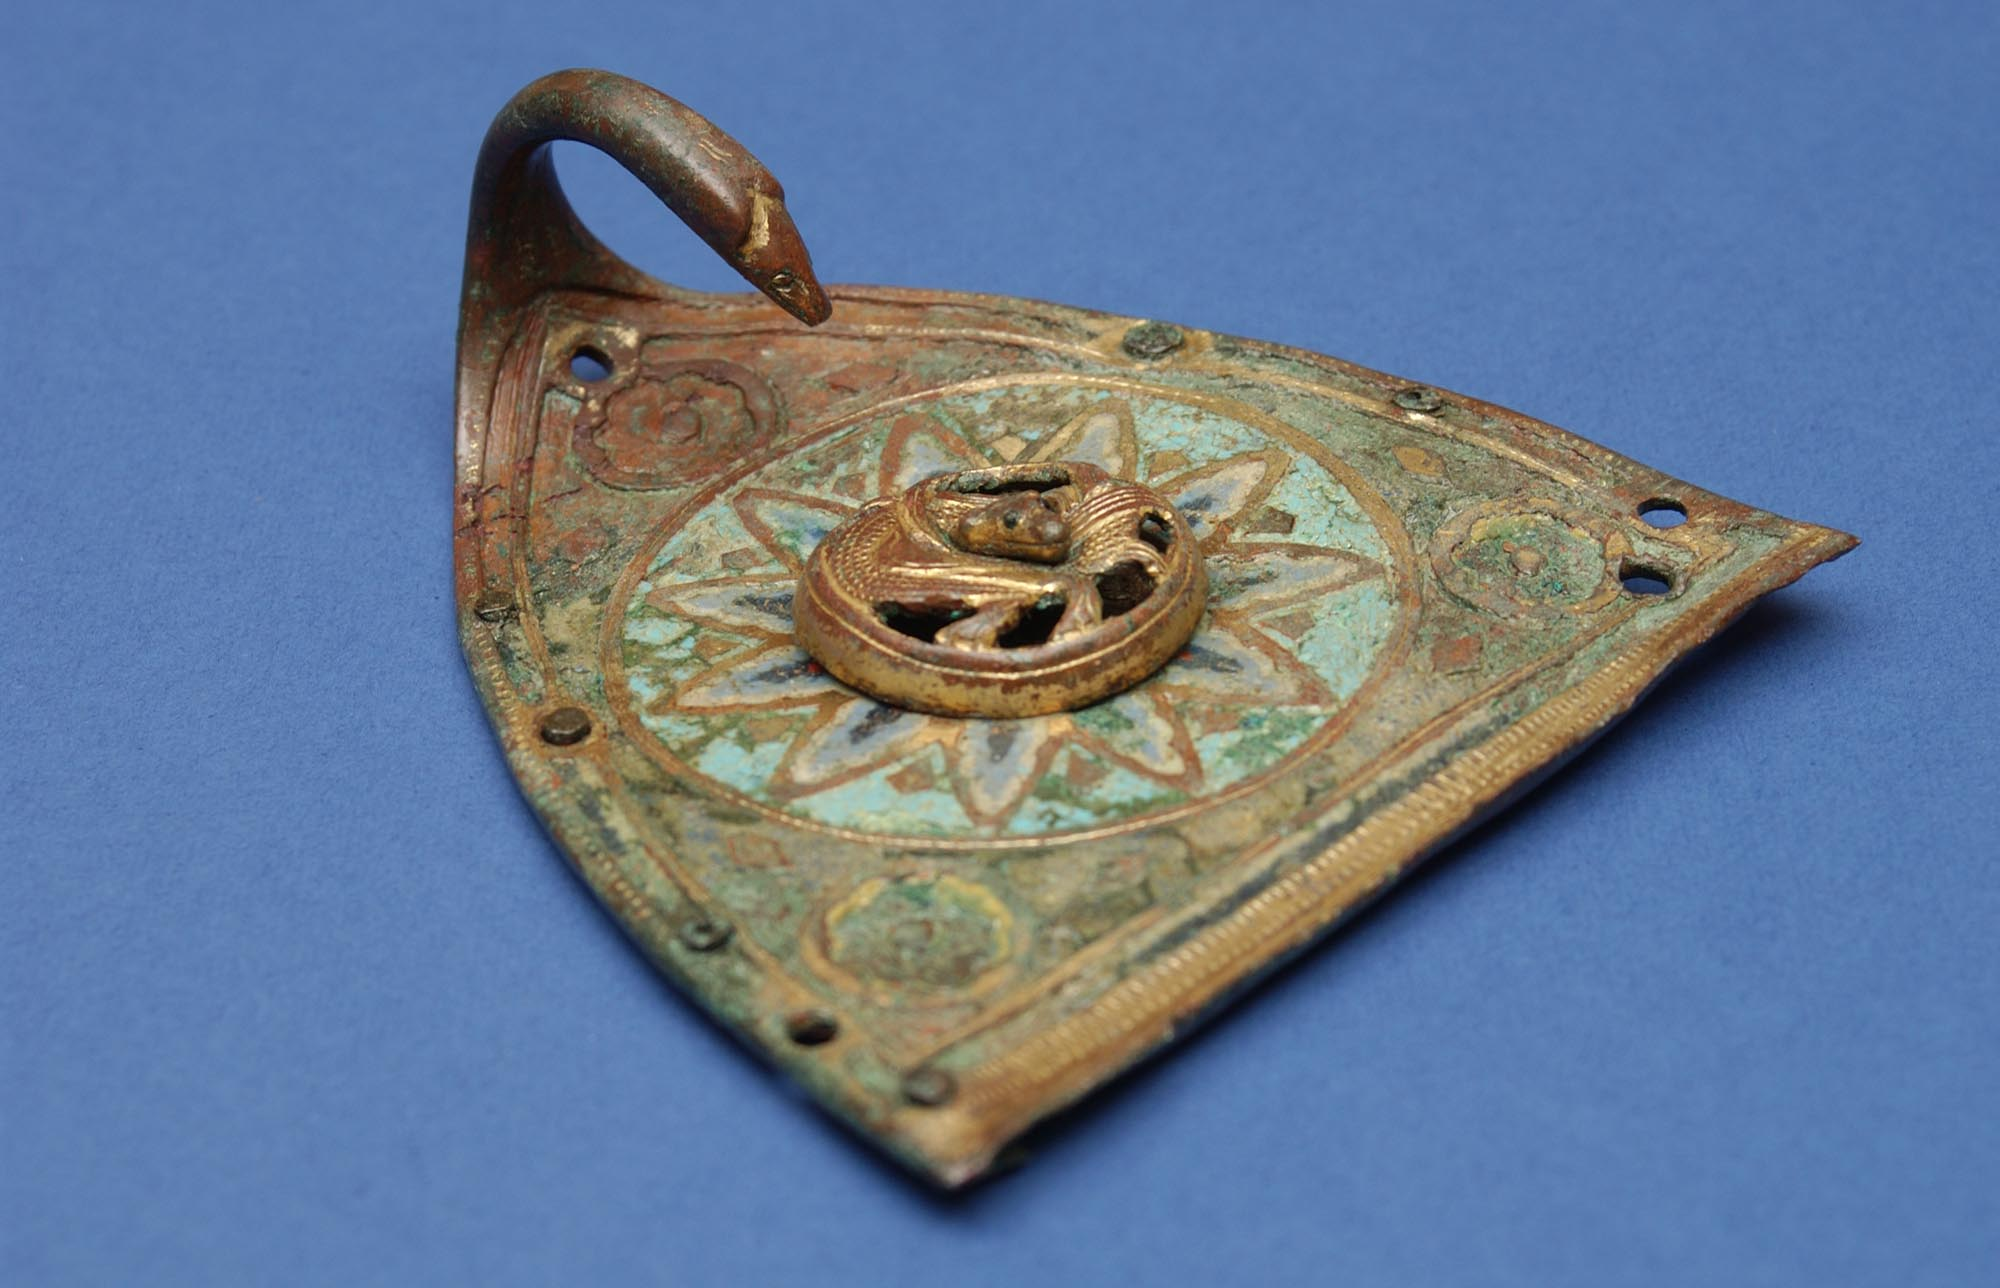 The hinged lid of a 13th-century Limoges enamel incense-boat, found in the sacristy at Leicester Abbey in 1930 -